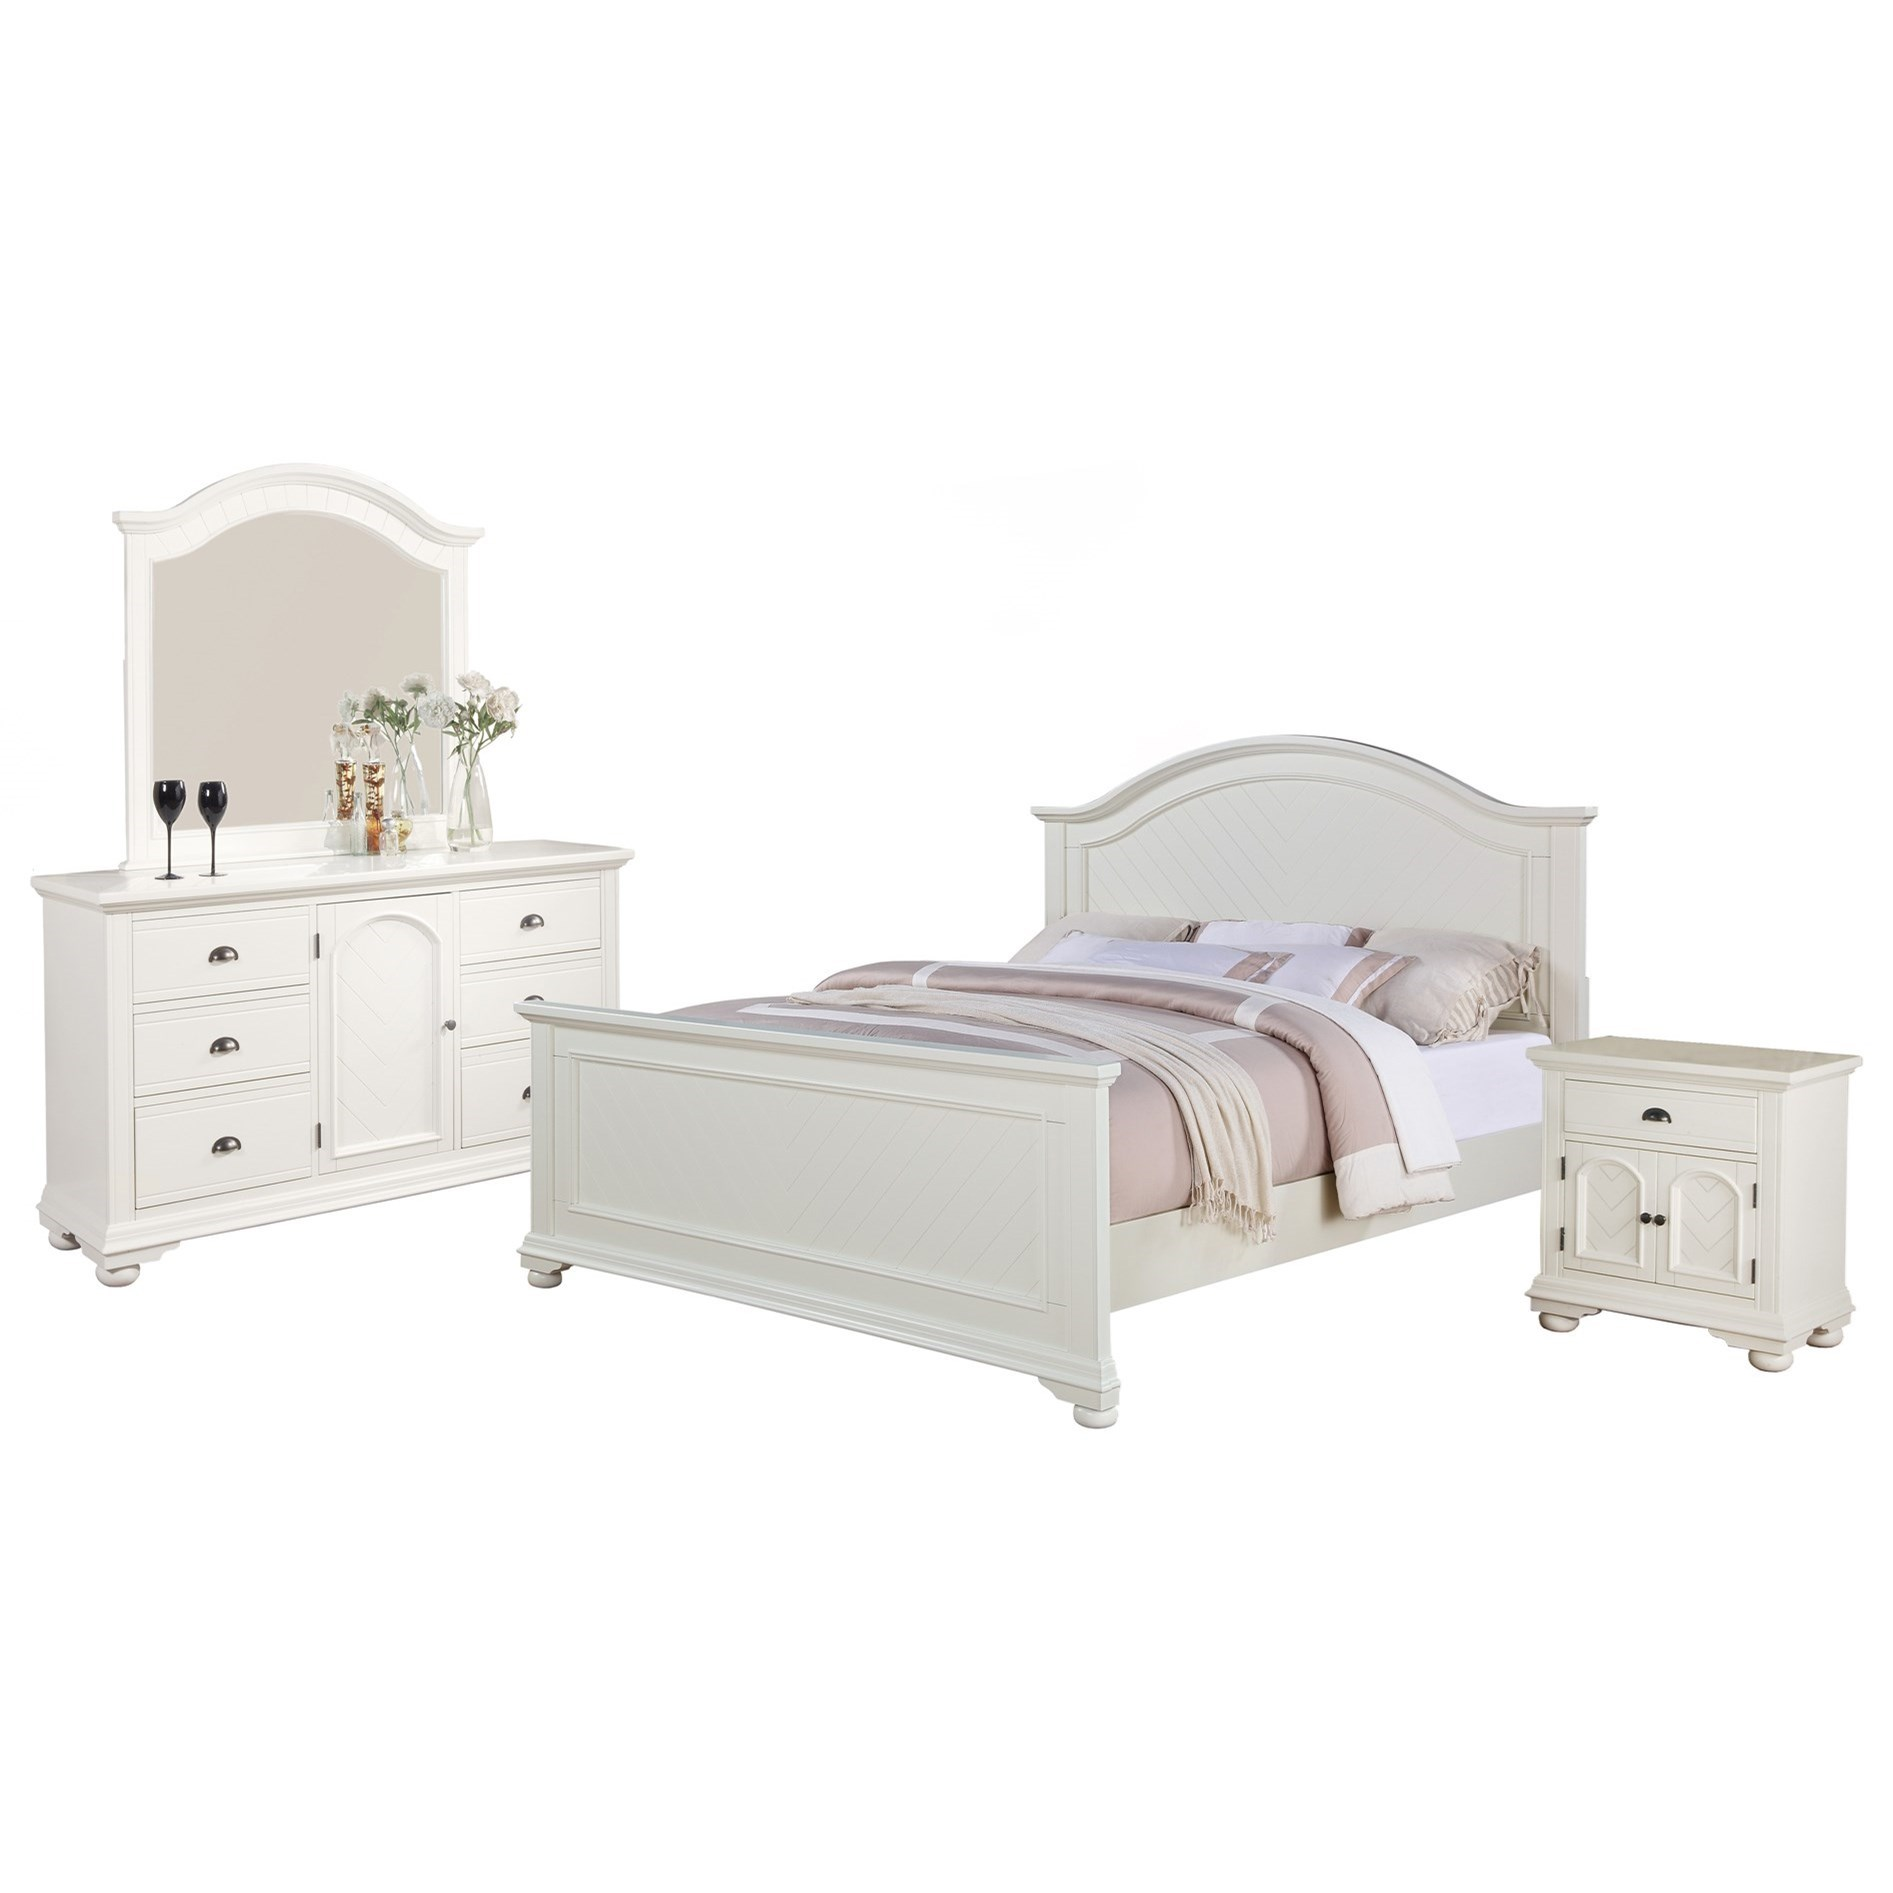 Brook King Bedroom Group by Elements International at Bullard Furniture